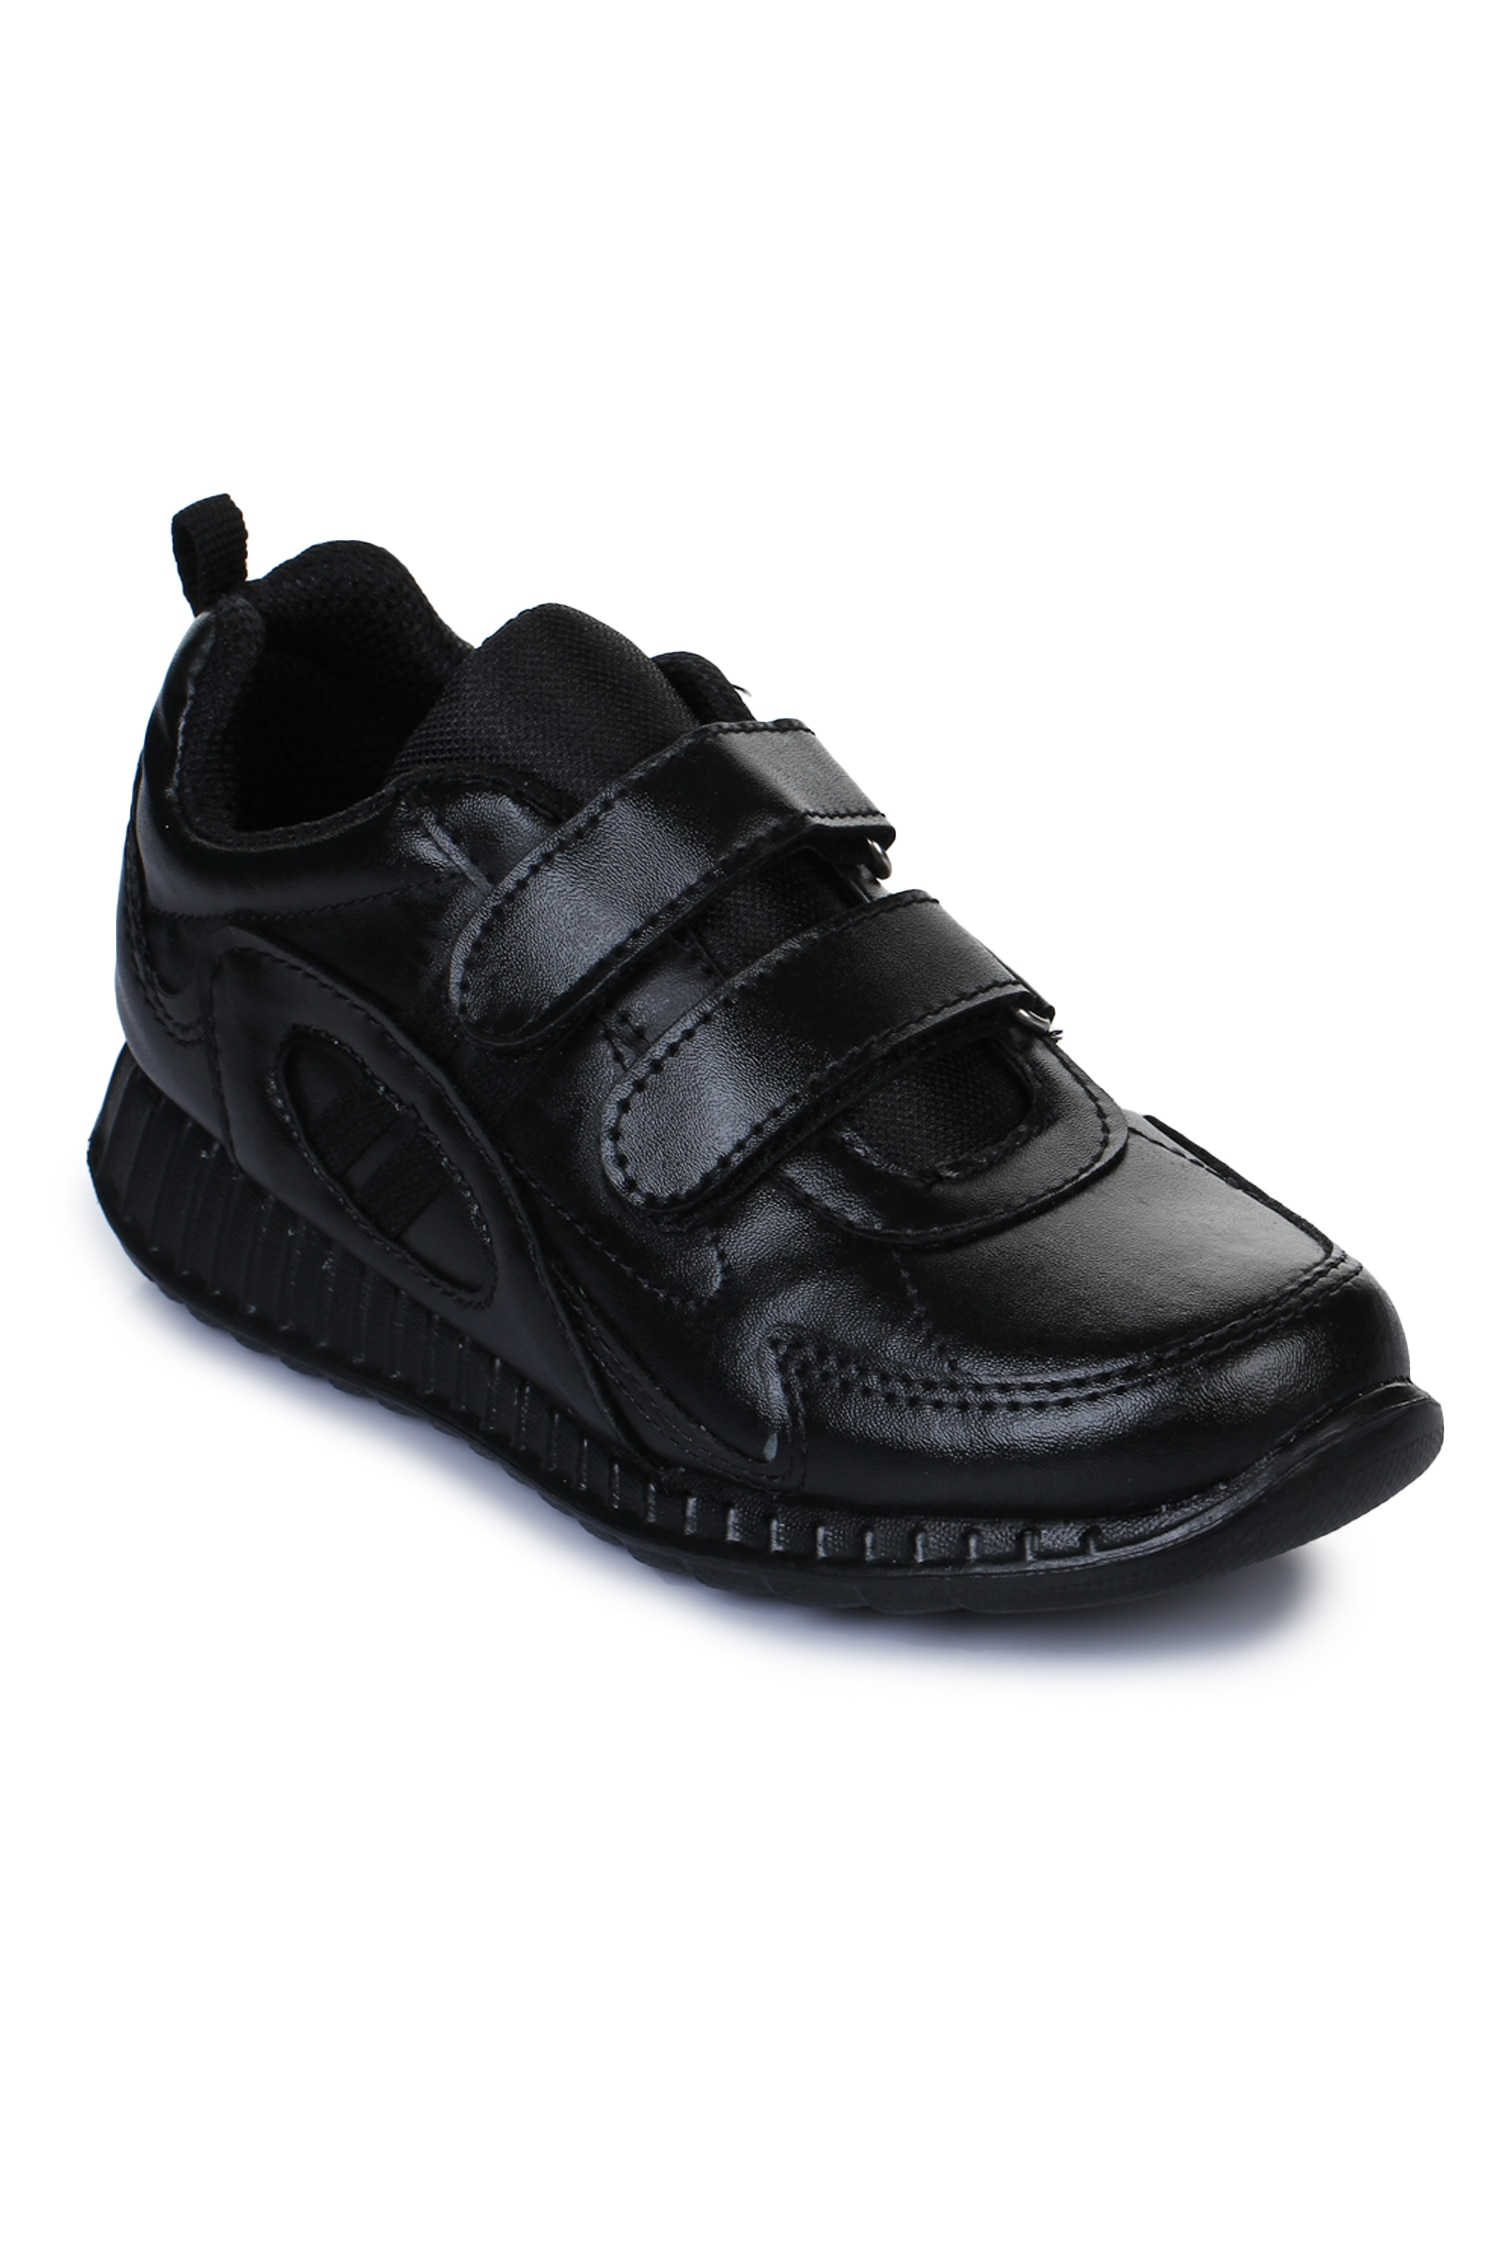 Liberty Force 10 Black School Shoes for boys